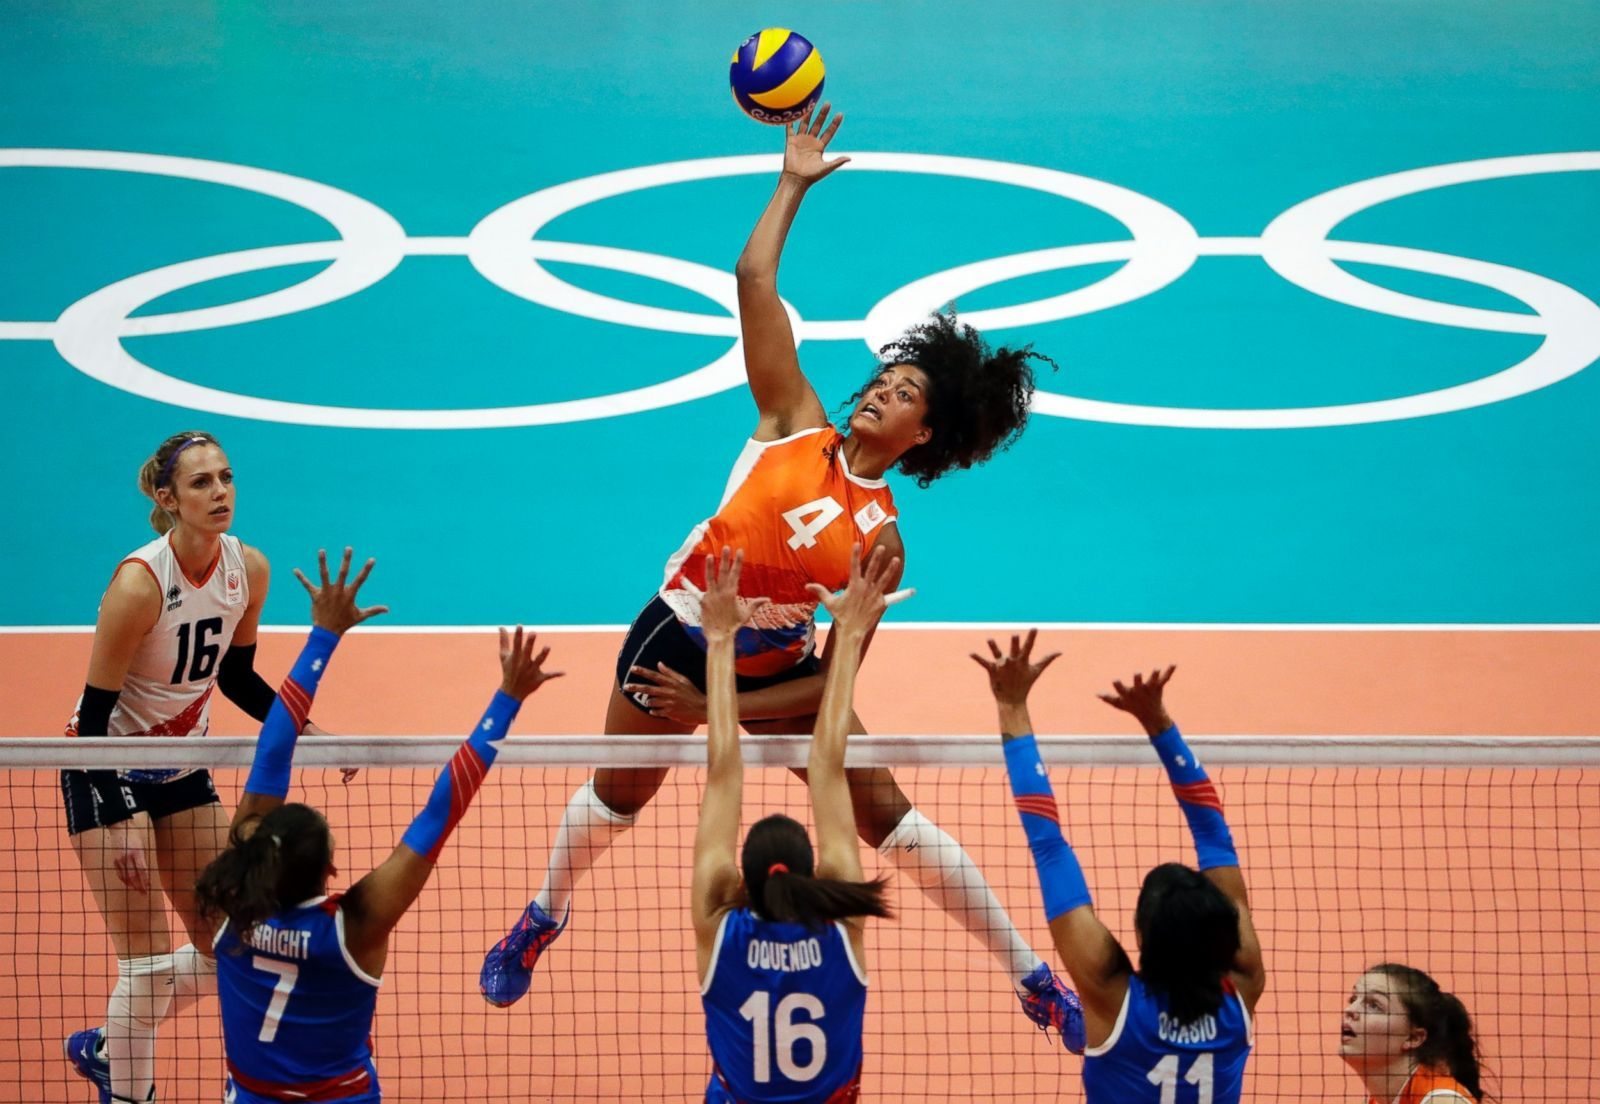 Netherlands Celeste Plak Spikes The Ball Against Puerto Rico During A Women S Volleybal Nederland